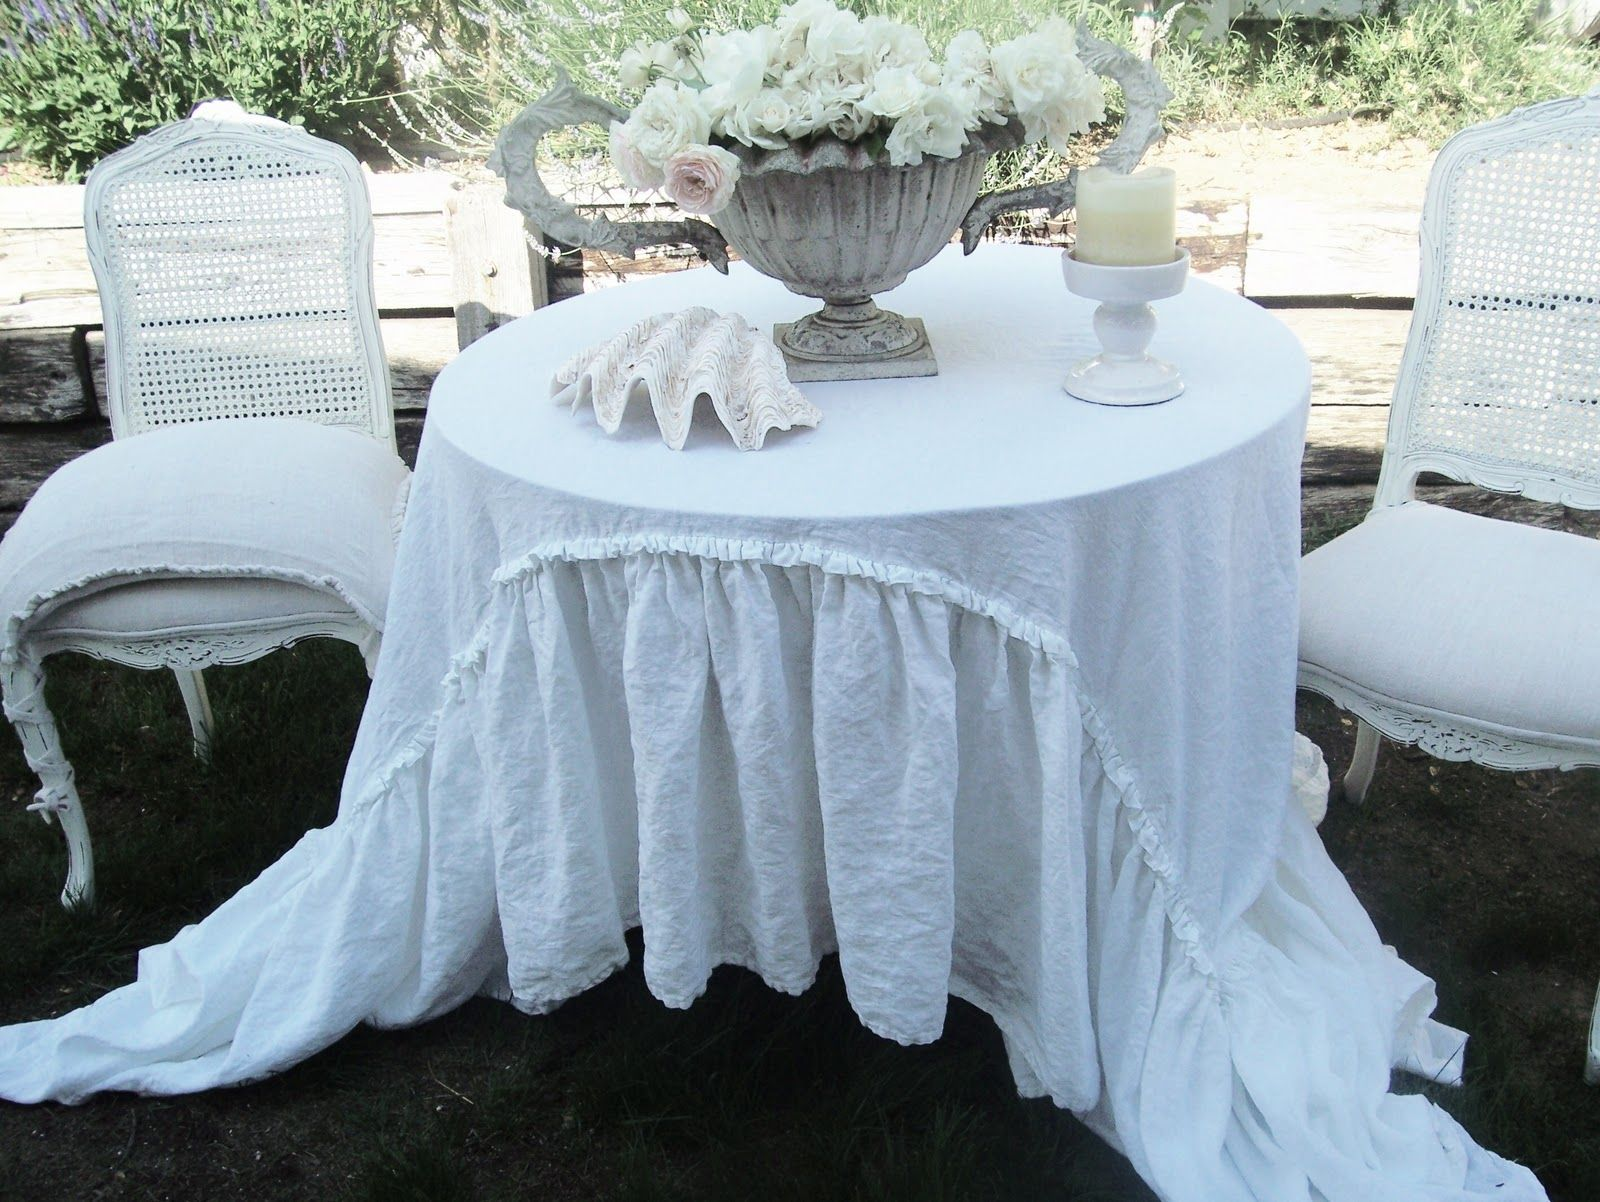 Captivating Tablecloth | Belgian Linen Ruffle Tablecloth.